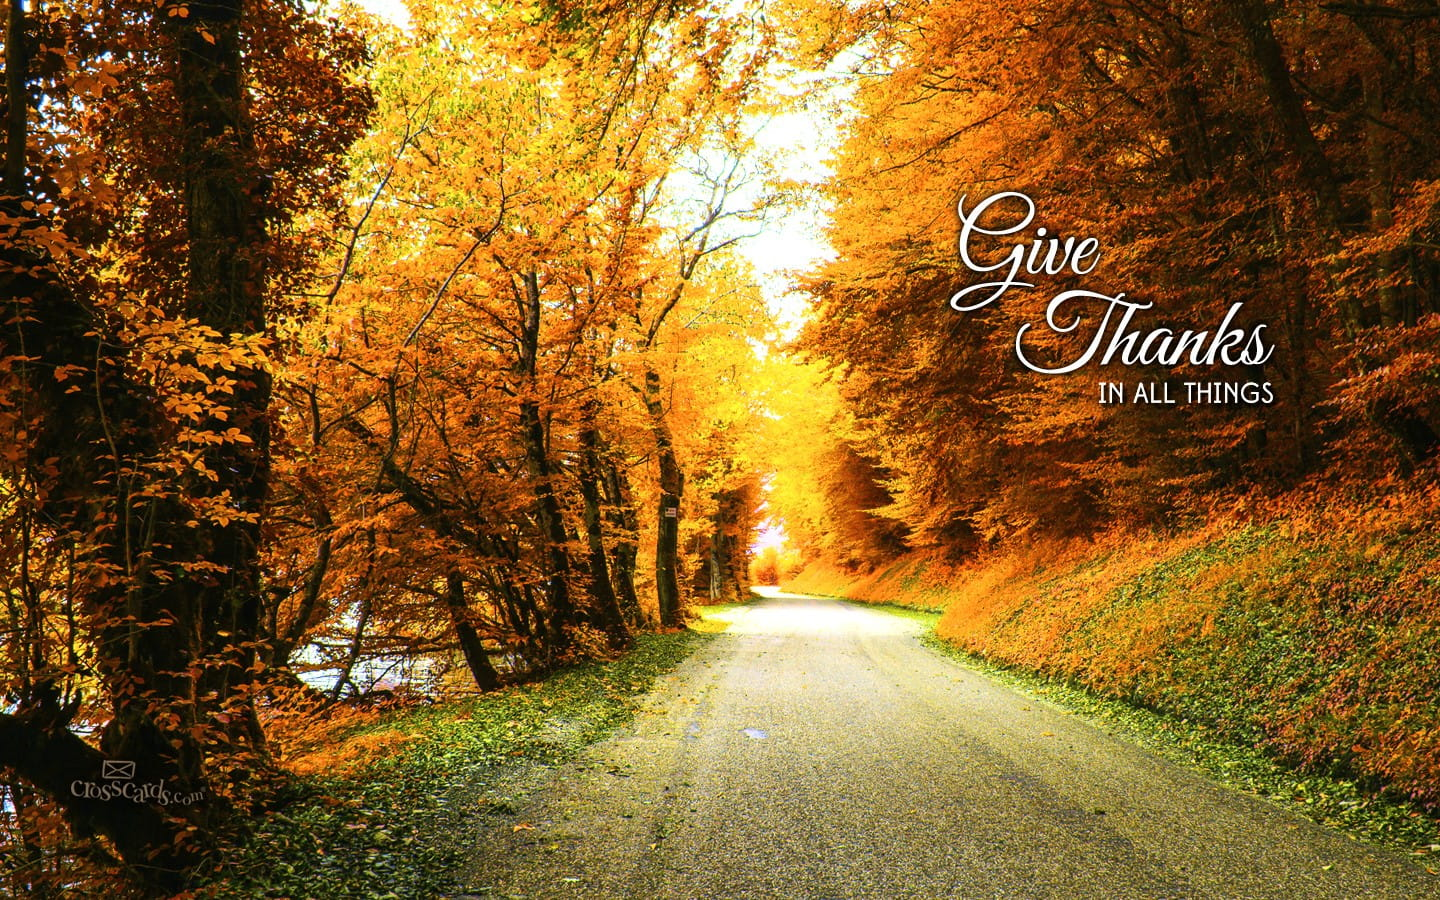 Sympathy Wallpaper Quotes Give Thanks Desktop Wallpaper Free Backgrounds